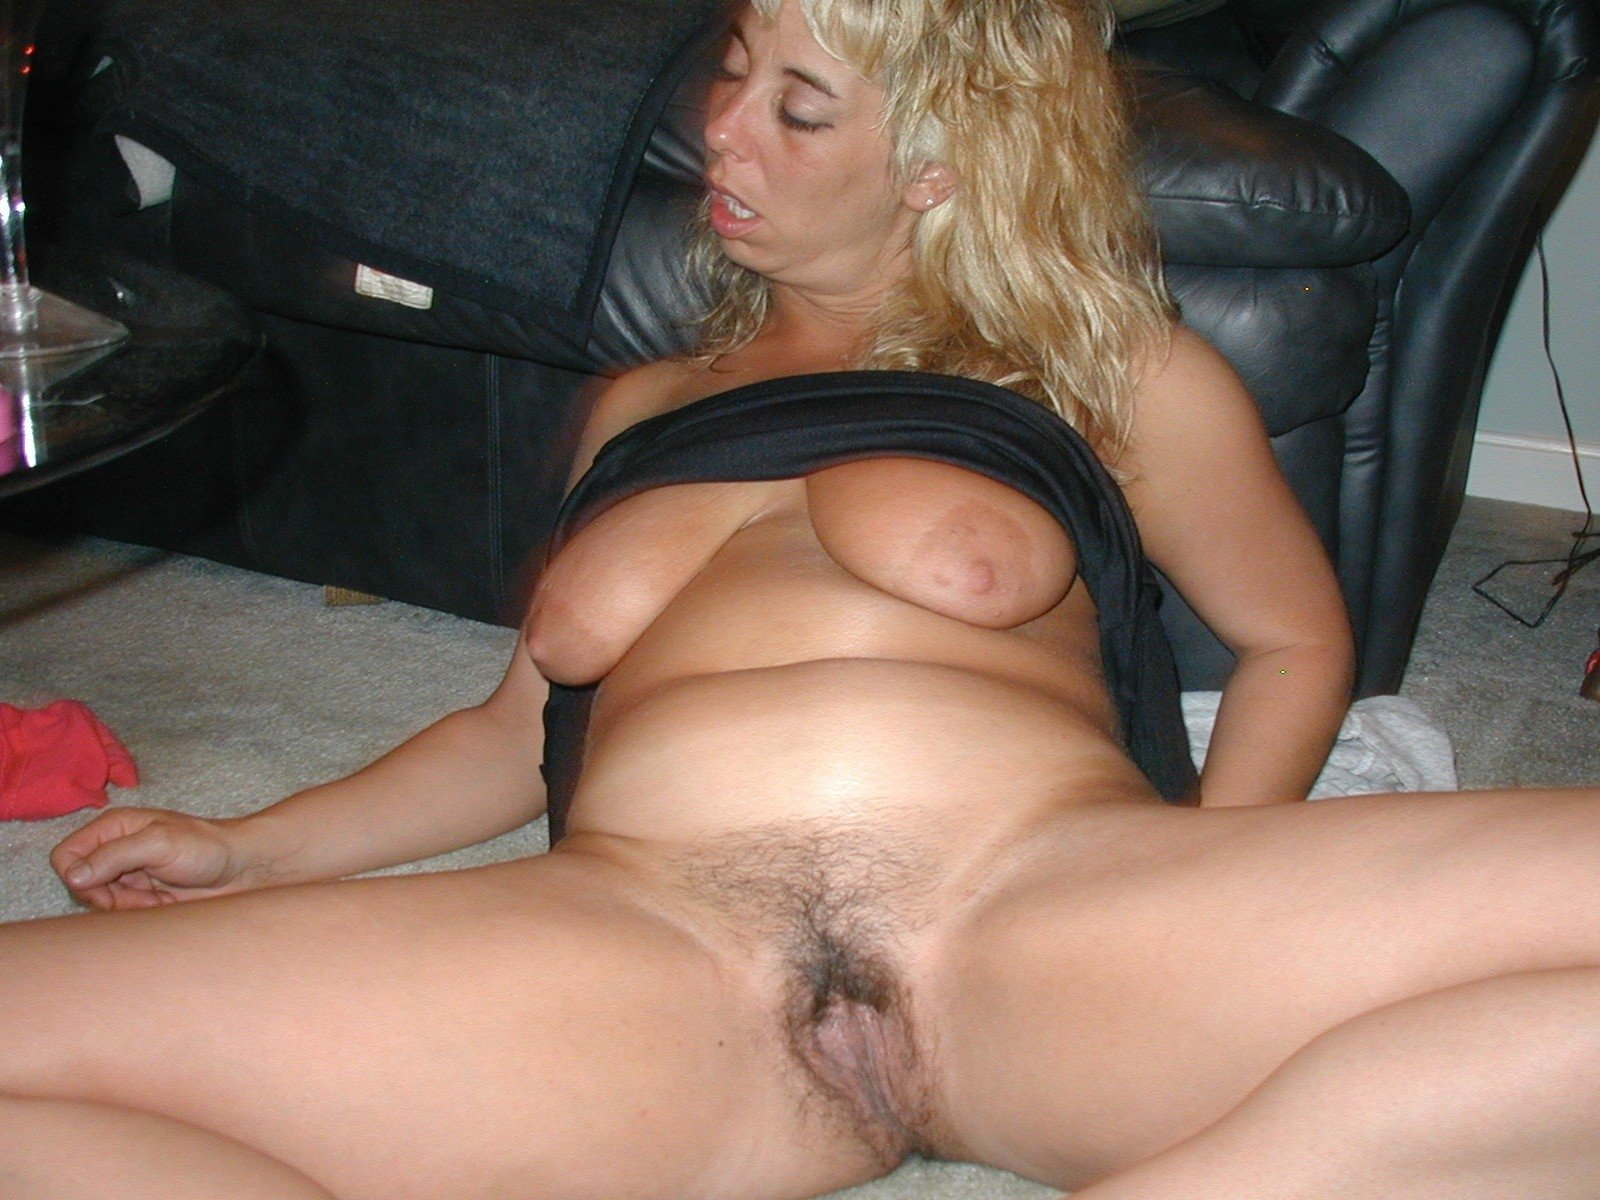 Drunk mom shows pussy